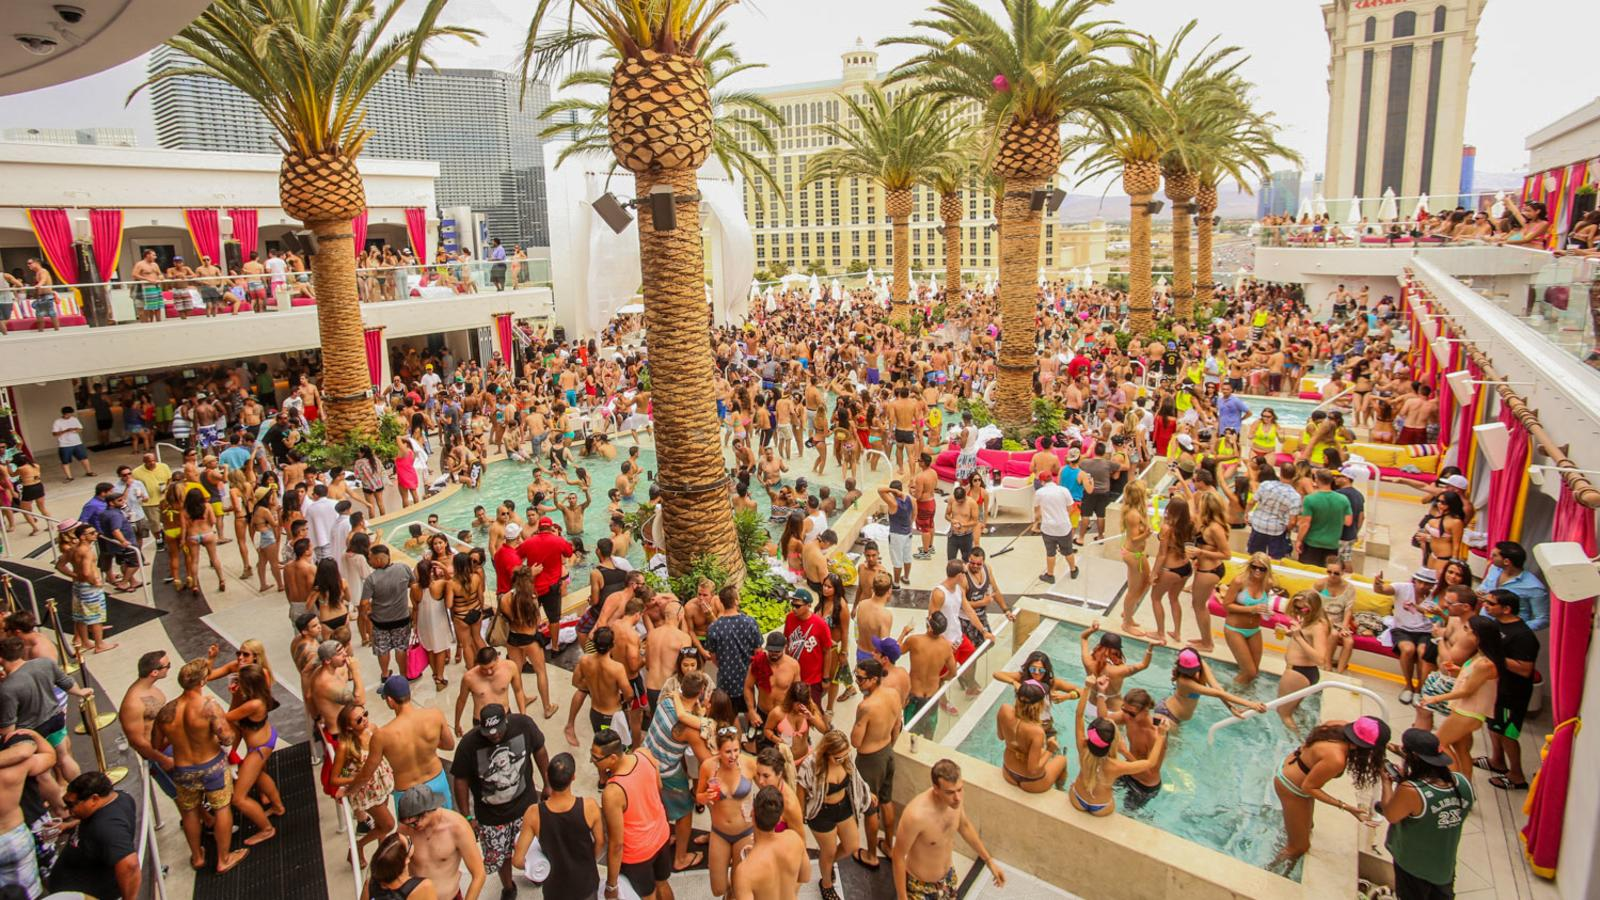 12 Las Vegas Pool Party Scenes